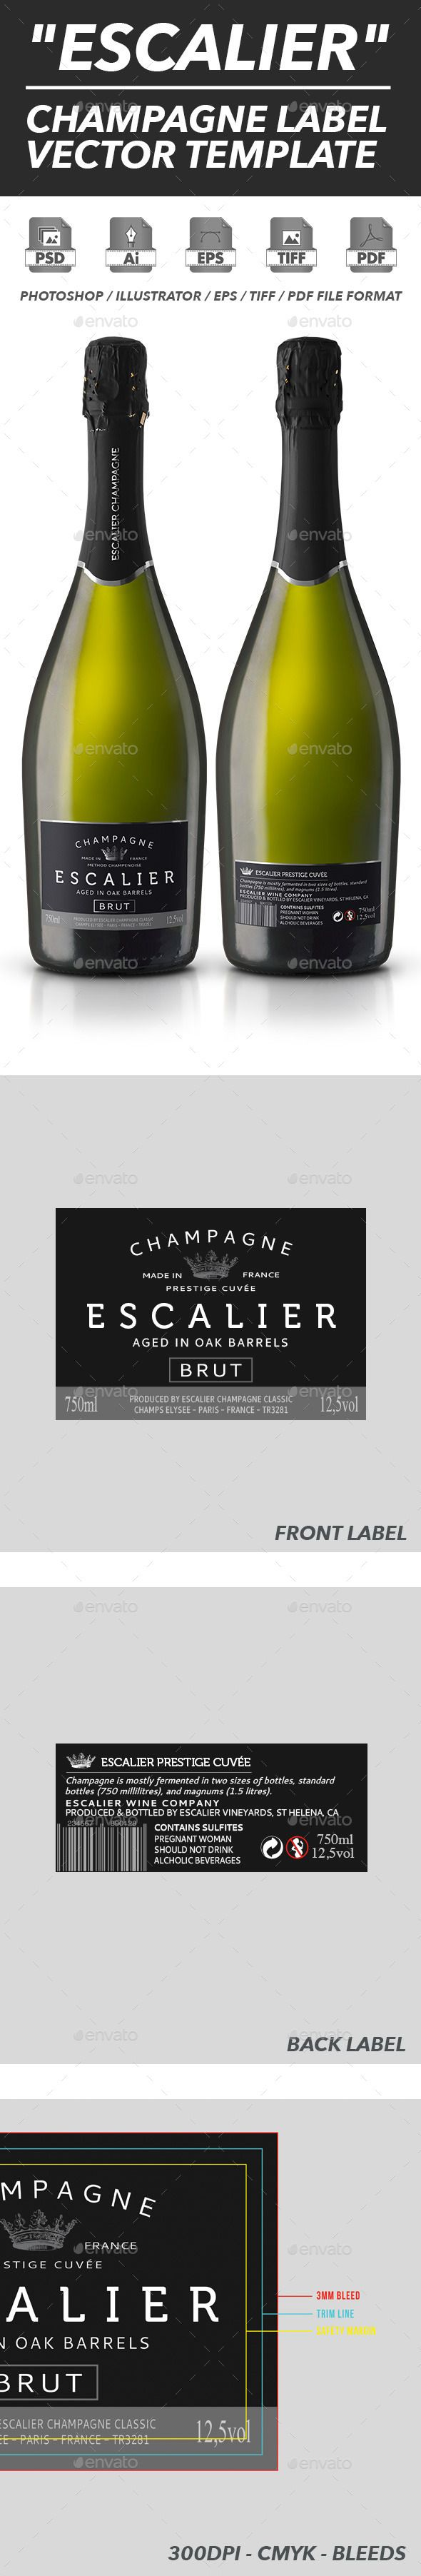 Champagne Label Template PSD, Vector EPS, AI. Download here: http://graphicriver.net/item/champagne-label-vector-template/10716444?ref=ksioks